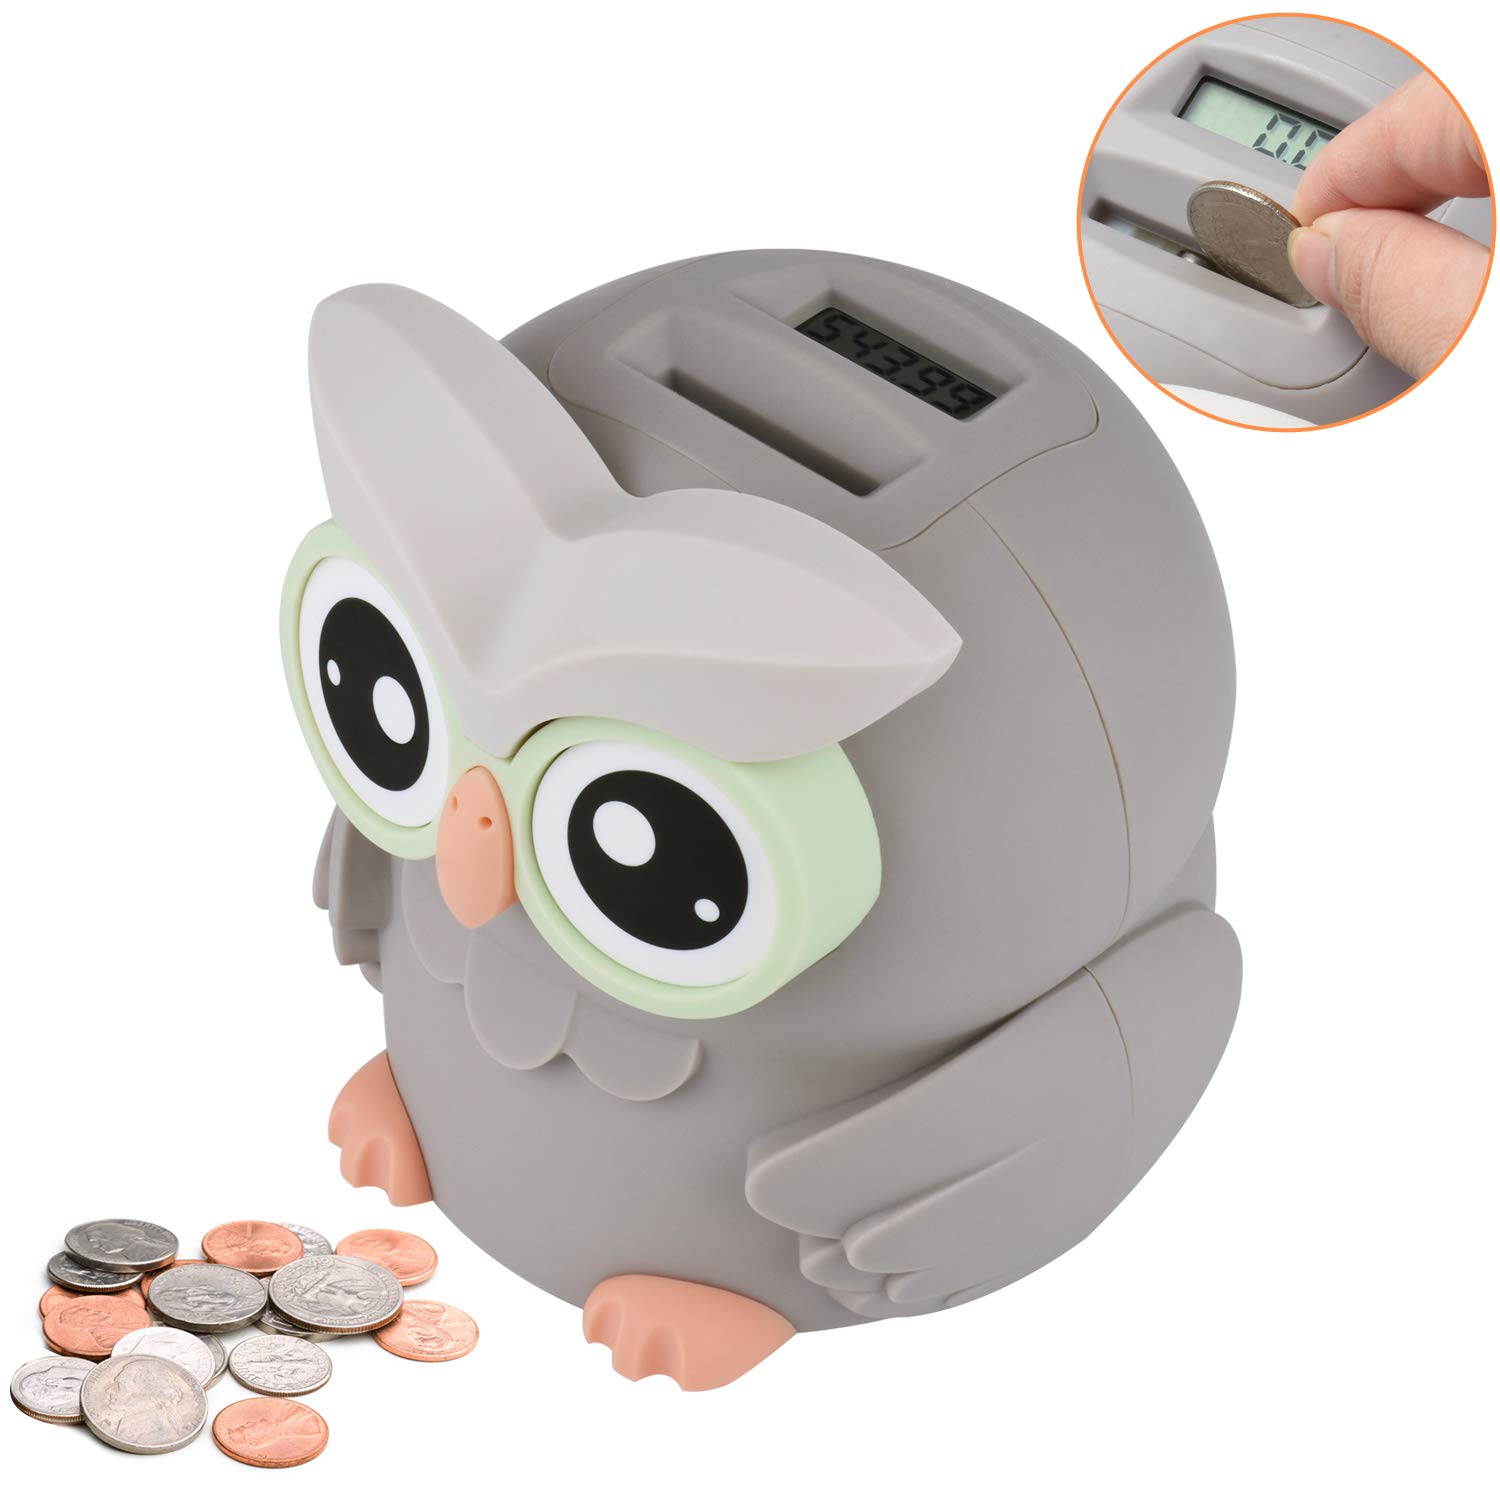 Lefree Piggy Bank,Owl Digital Coin Bank,Money Saving Box with Automatic Counting for Boys,Girls and Adults as a Gift on Any Festivals,Money Bank Powered by 2 AAA Battery (Not Included)